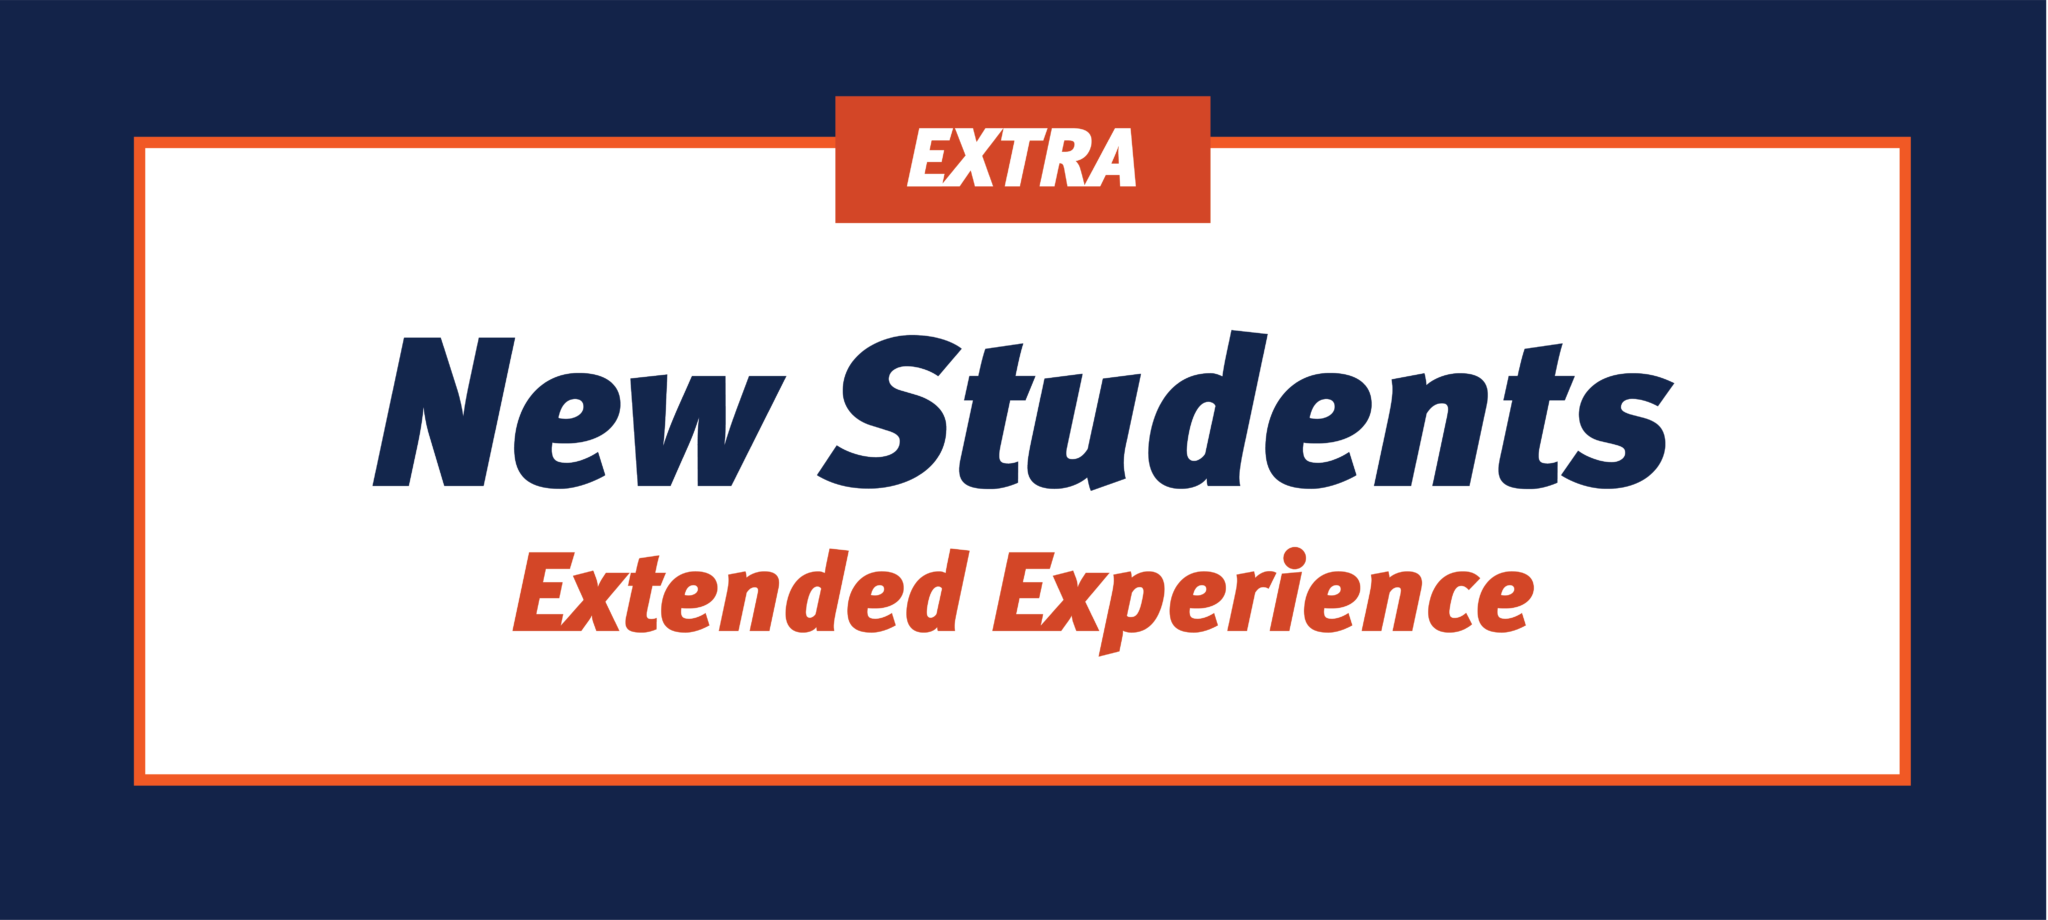 Extra - New Student Extended Experiences